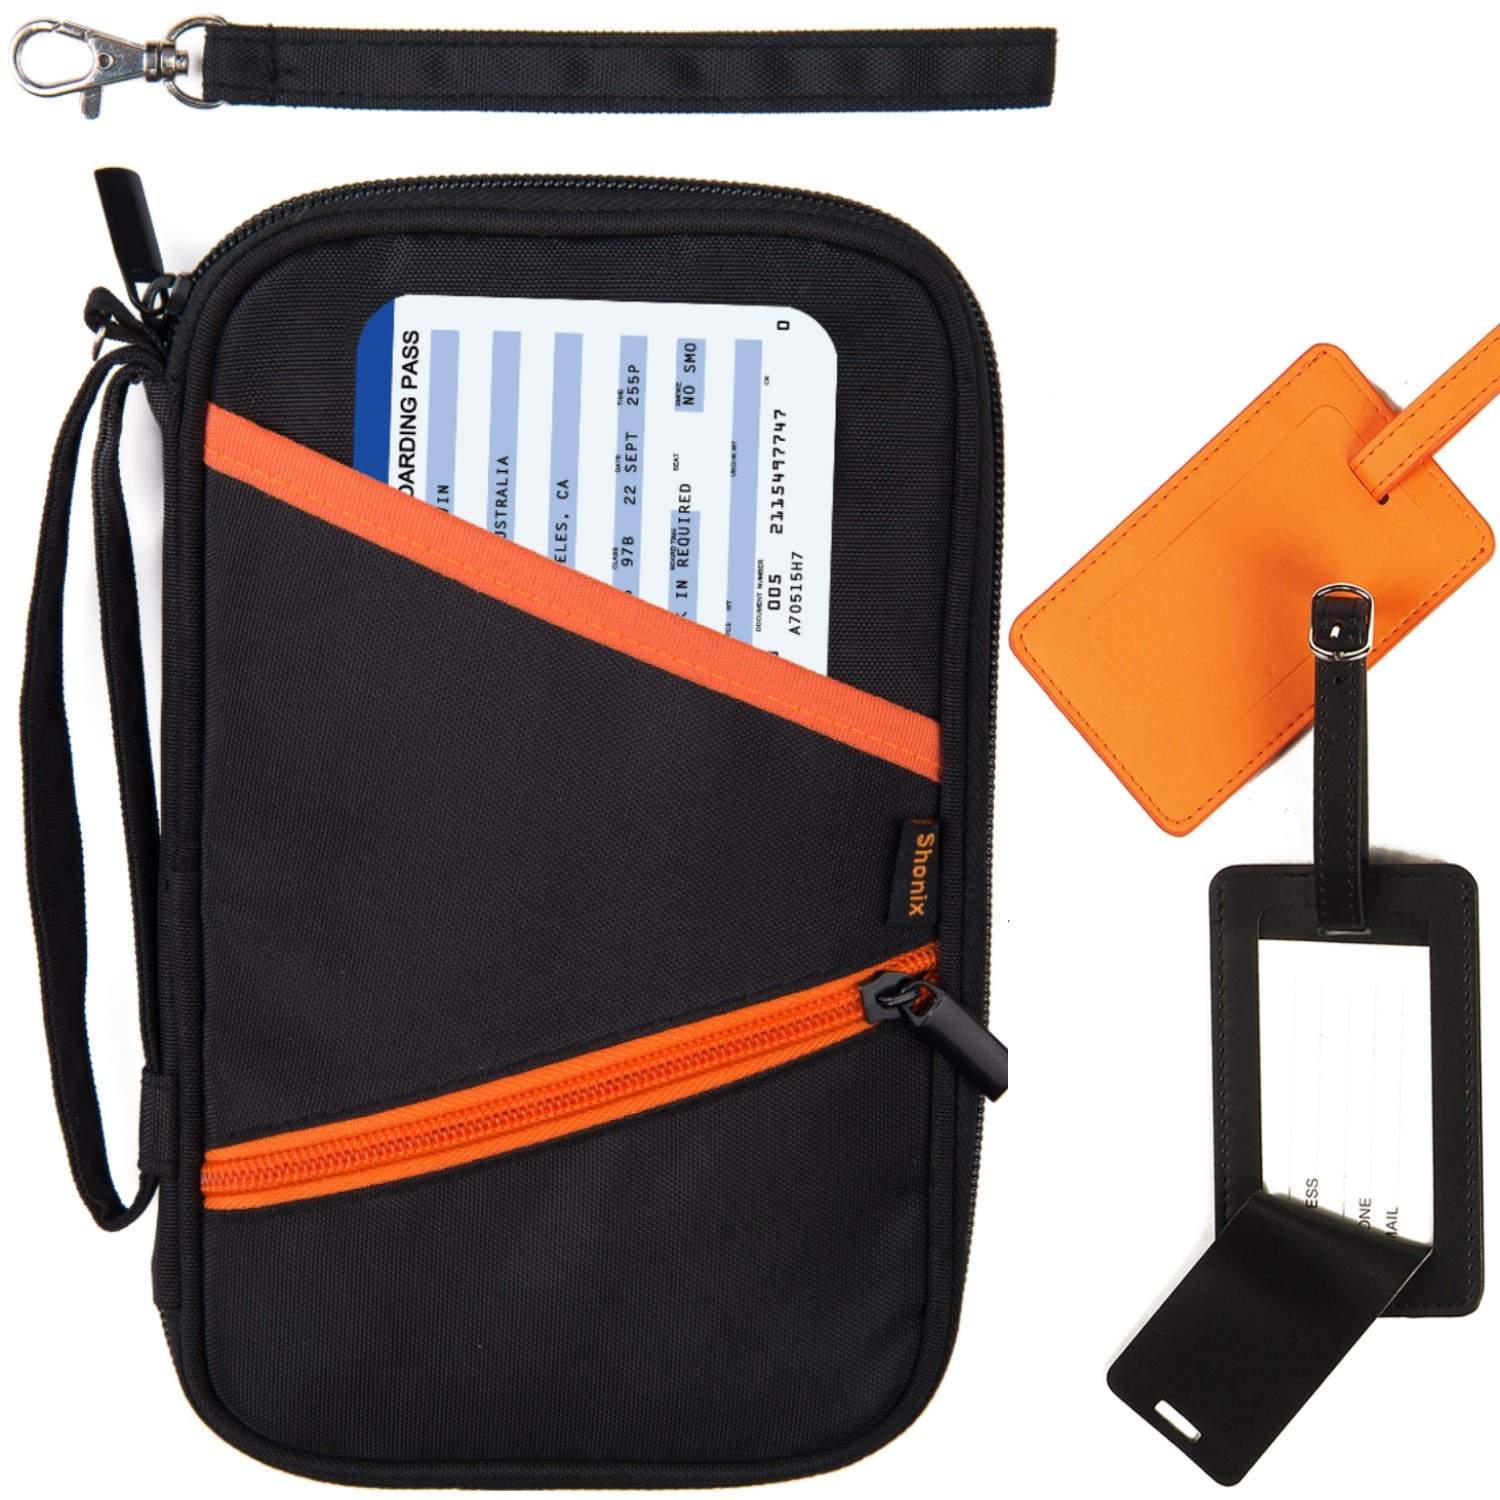 Family Passport Holder and Travel Wallet - RFID Blocking Document Organizer